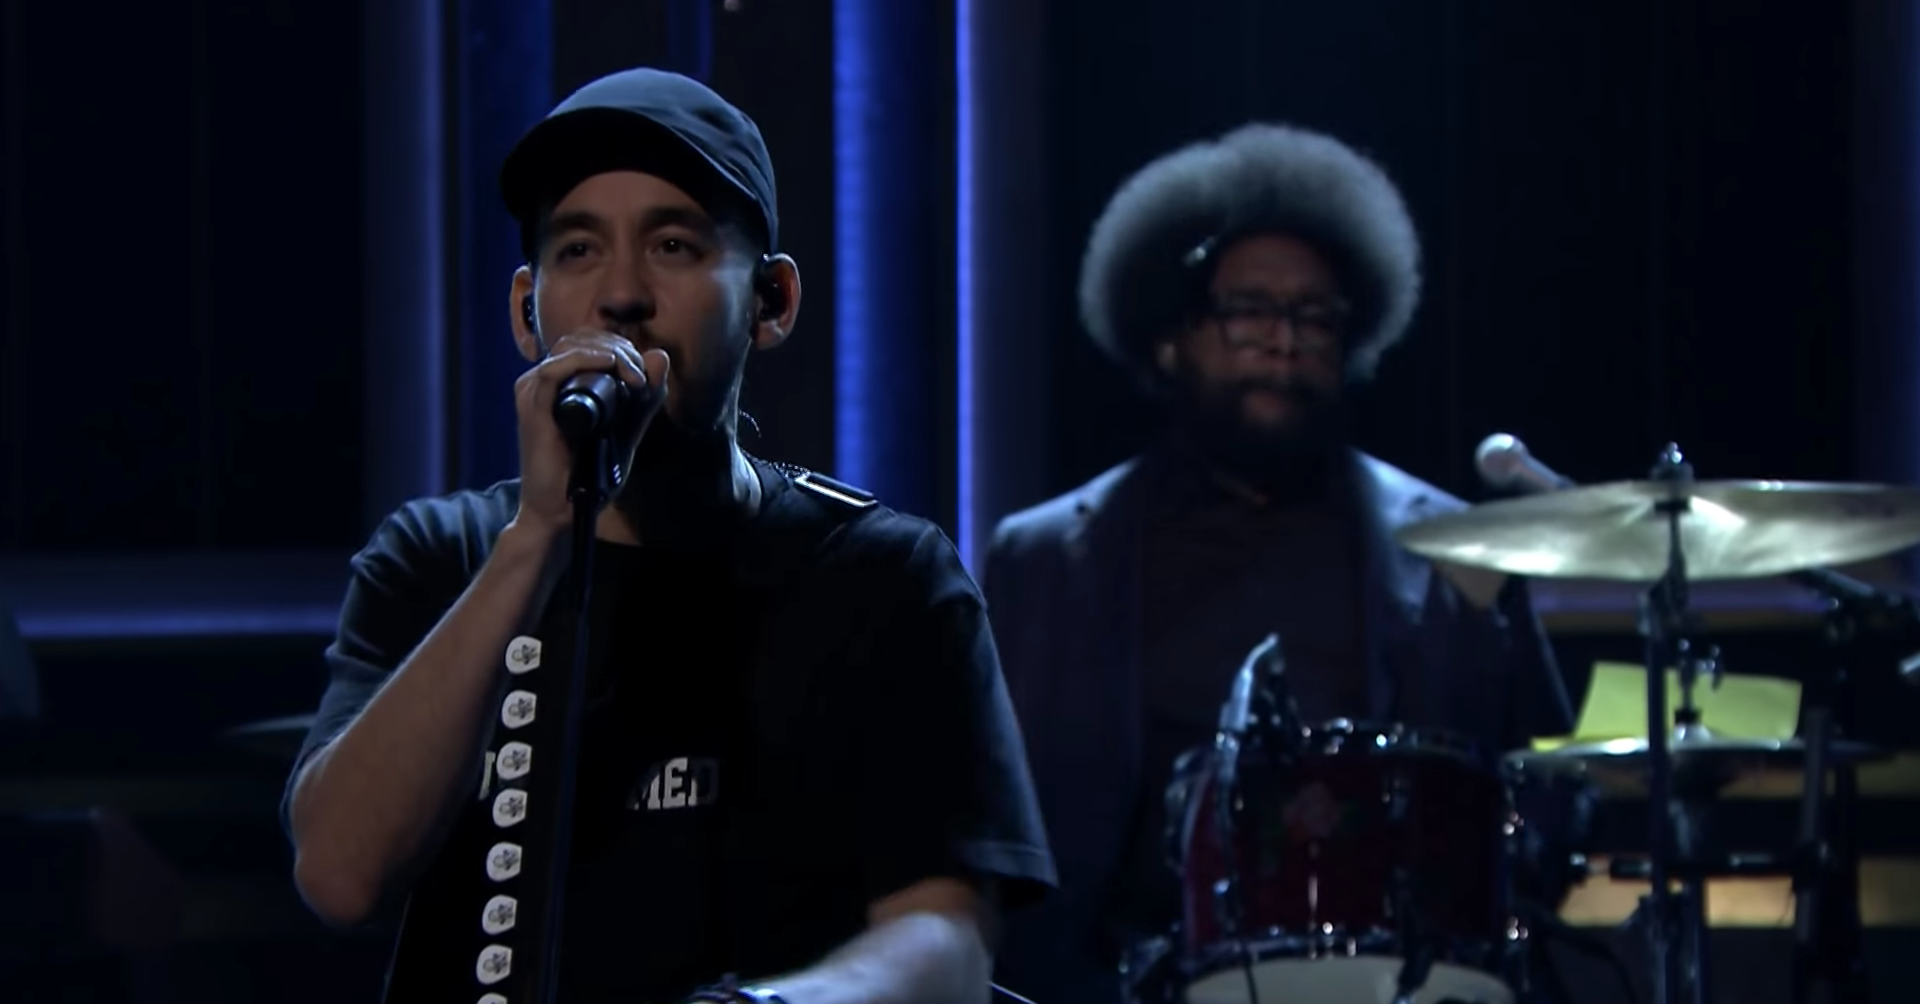 Mike Shinoda Has Made His Live TV Debut As A Solo Artist - News